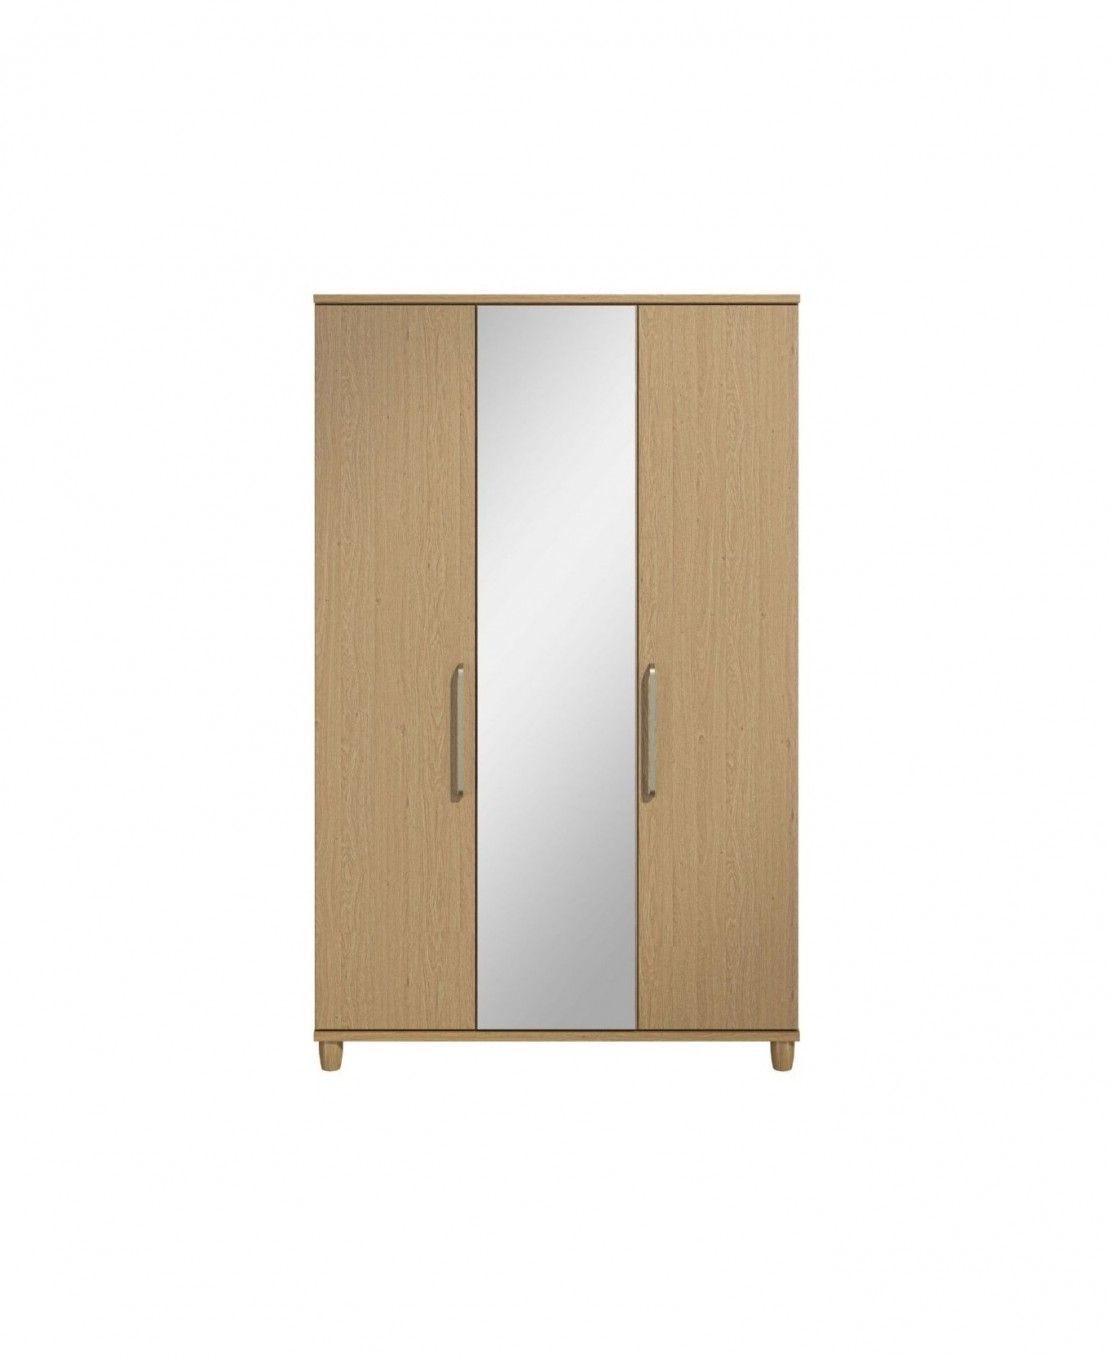 /_images/product-photos/kt-furniture-deco-3-door-centre-mirror-robe-oak-woodgrain-with-oak-a.jpg